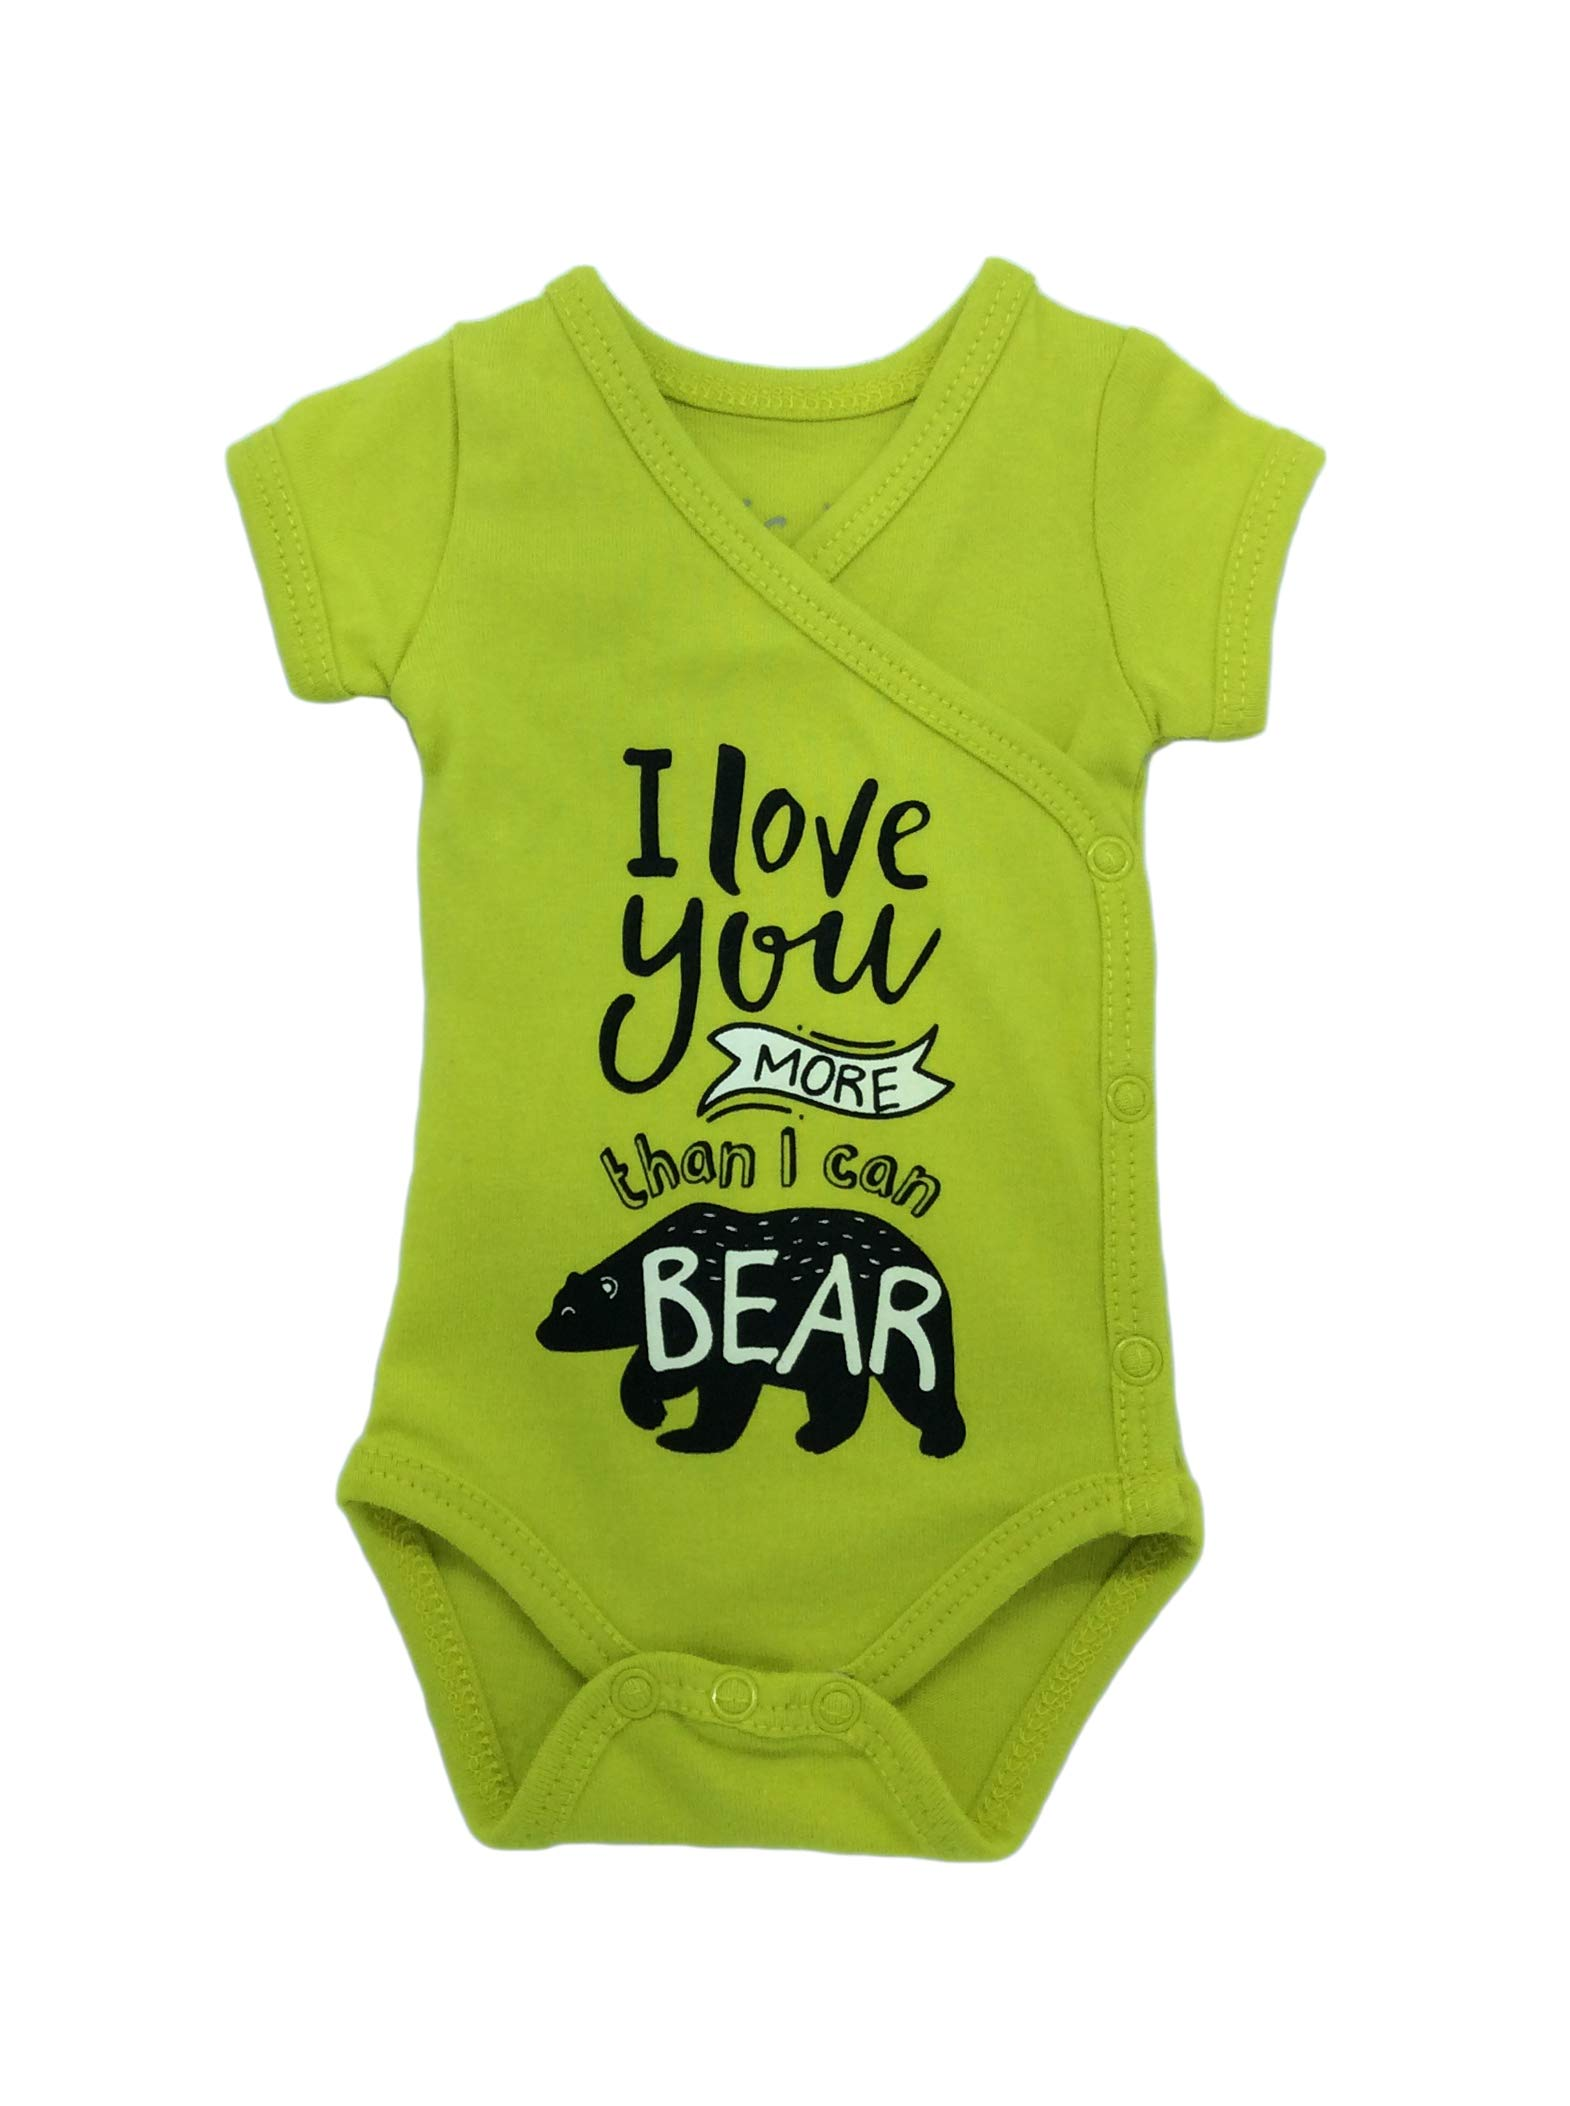 Sizes 9-24 Months SIBINULO Baby Boys Baby Girls Sleepsuit with ABS Mix Pack of 2